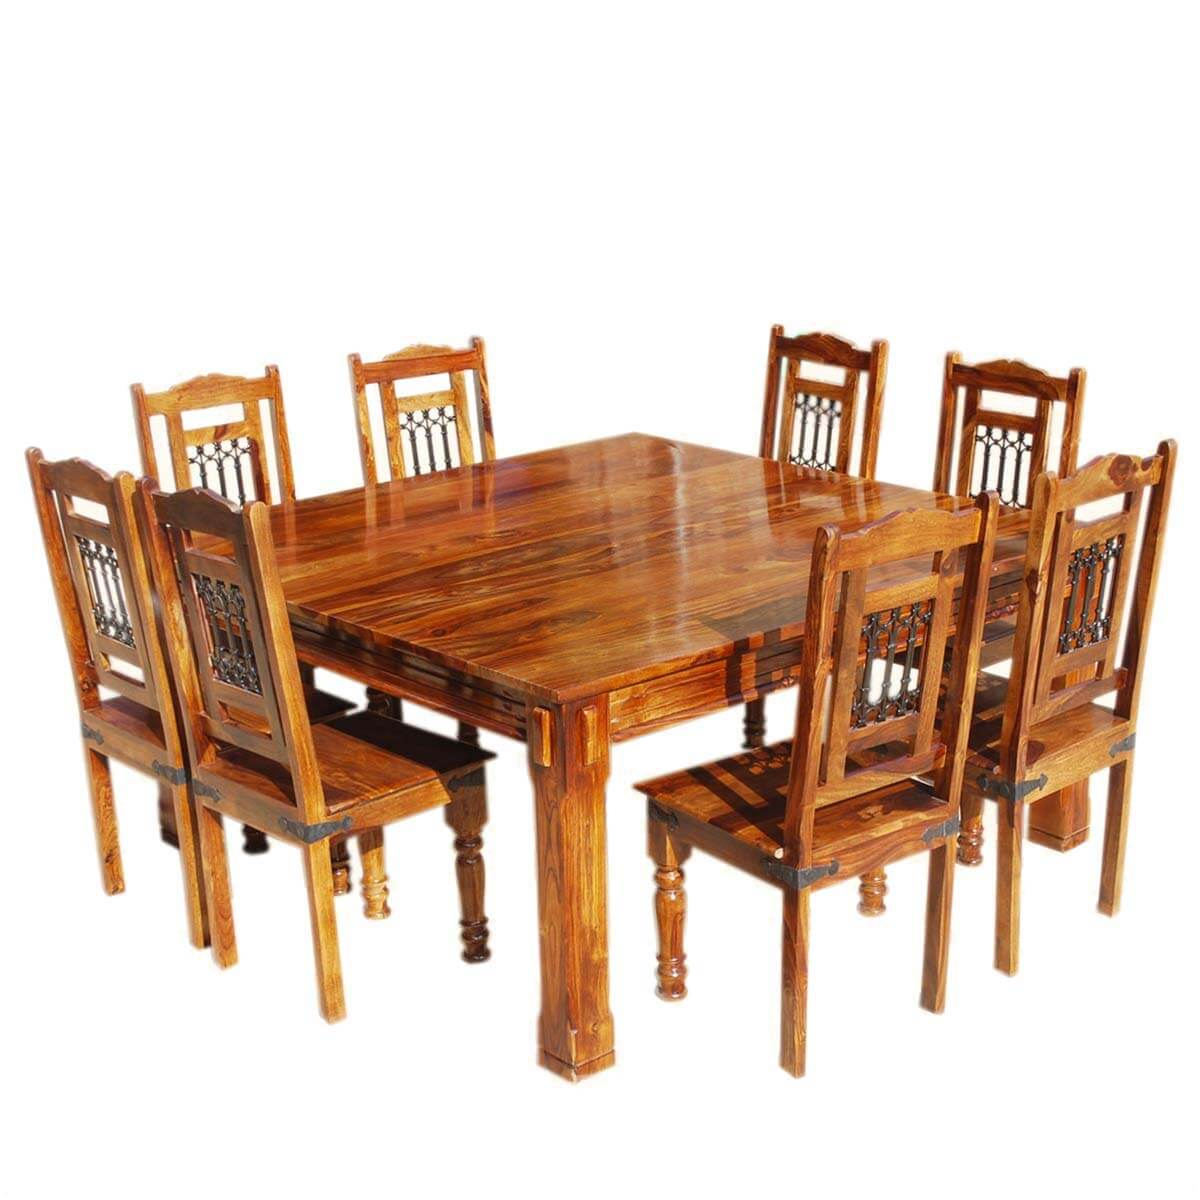 Wooden Dining Table Set ~ Solid wood rustic square dining table chairs set